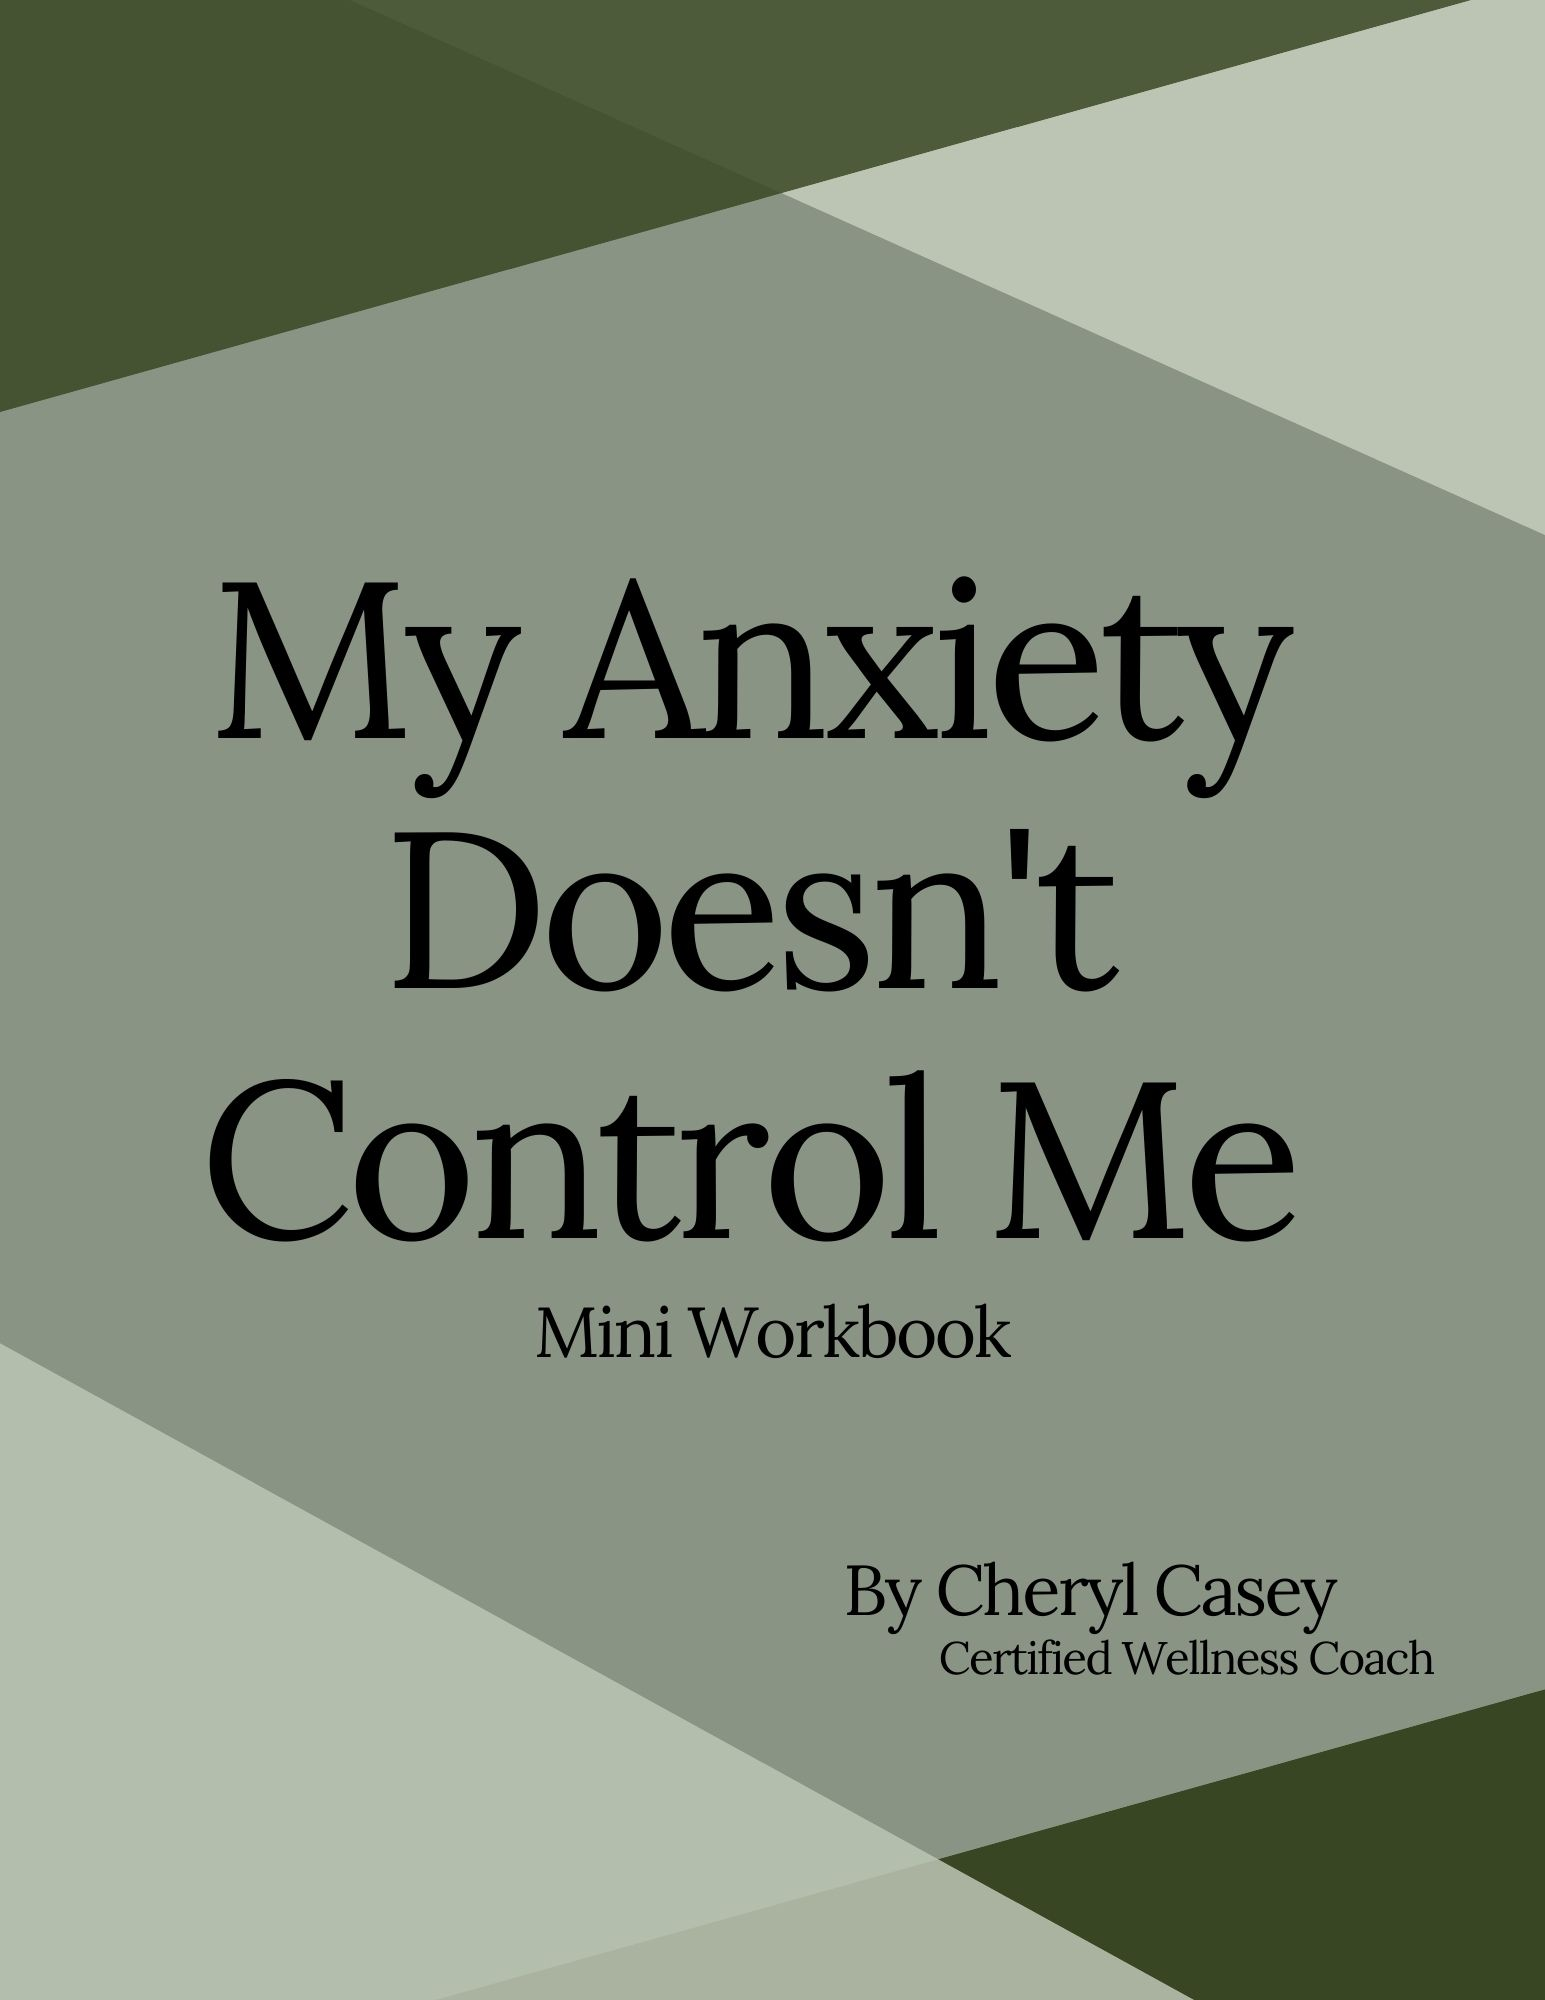 My Anxiety Doesn't Control Me - Mini Workbook